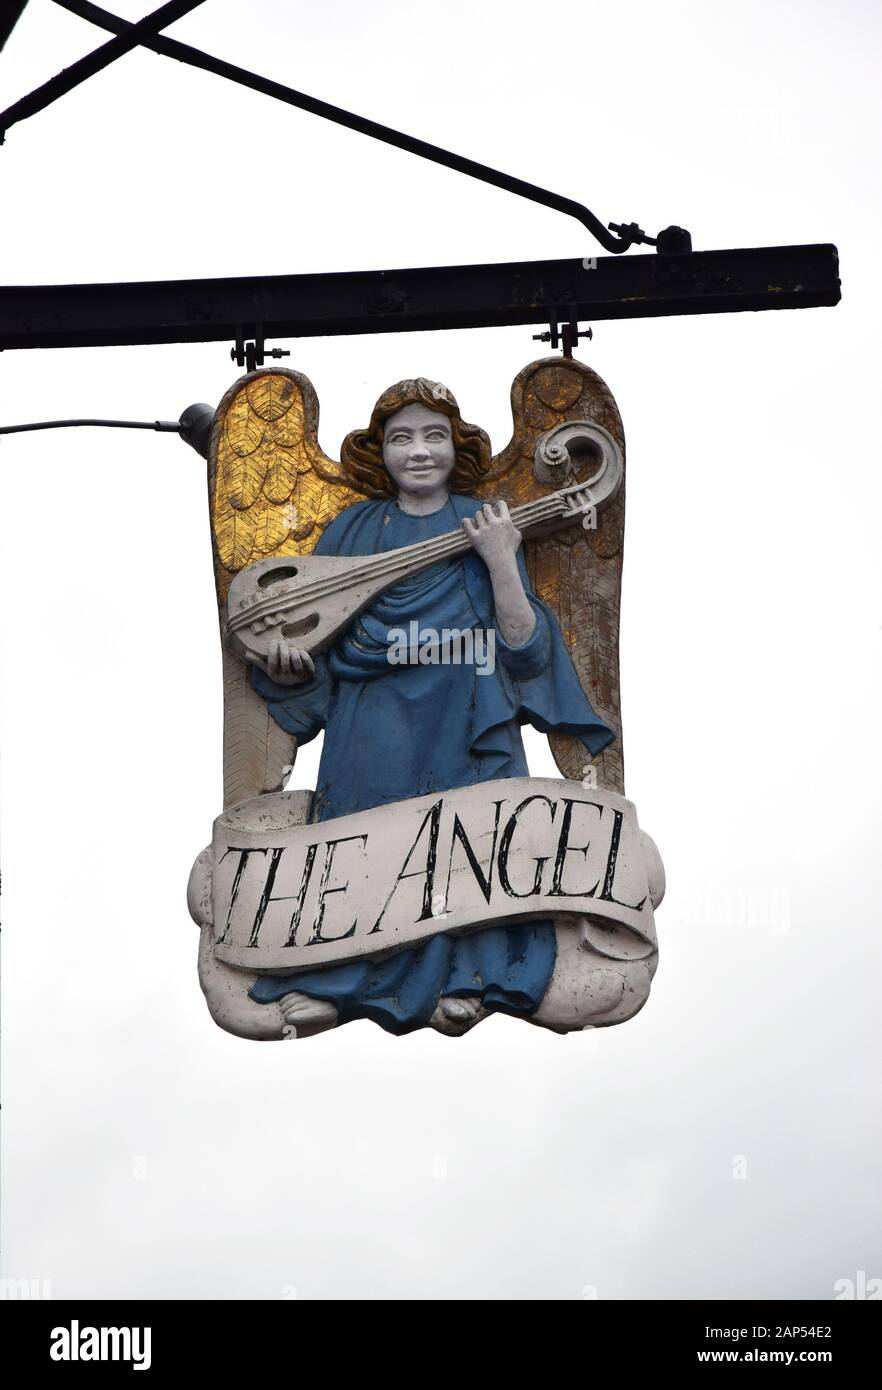 sign for the angel hotel, market square, lavenham, suffolk, england Stock Photo